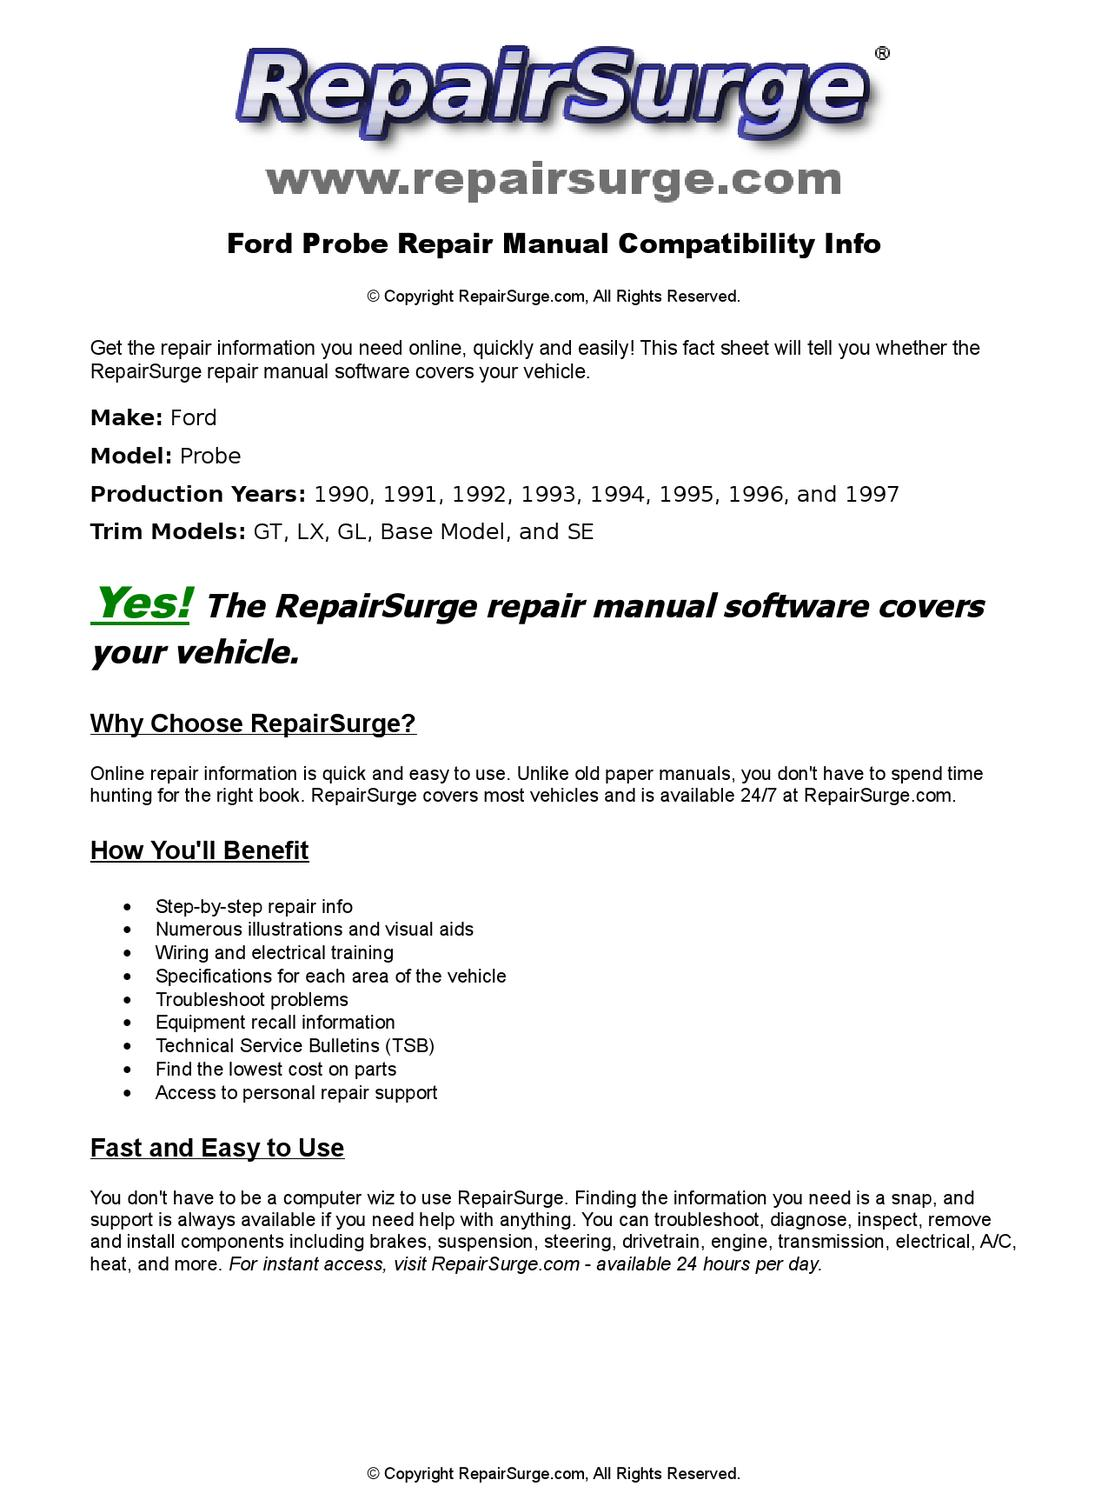 Ford Probe Online Repair Manual For 1990, 1991, 1992, 1993, 1994, 1995,  1996, and 1997 by RepairSurge - issuu